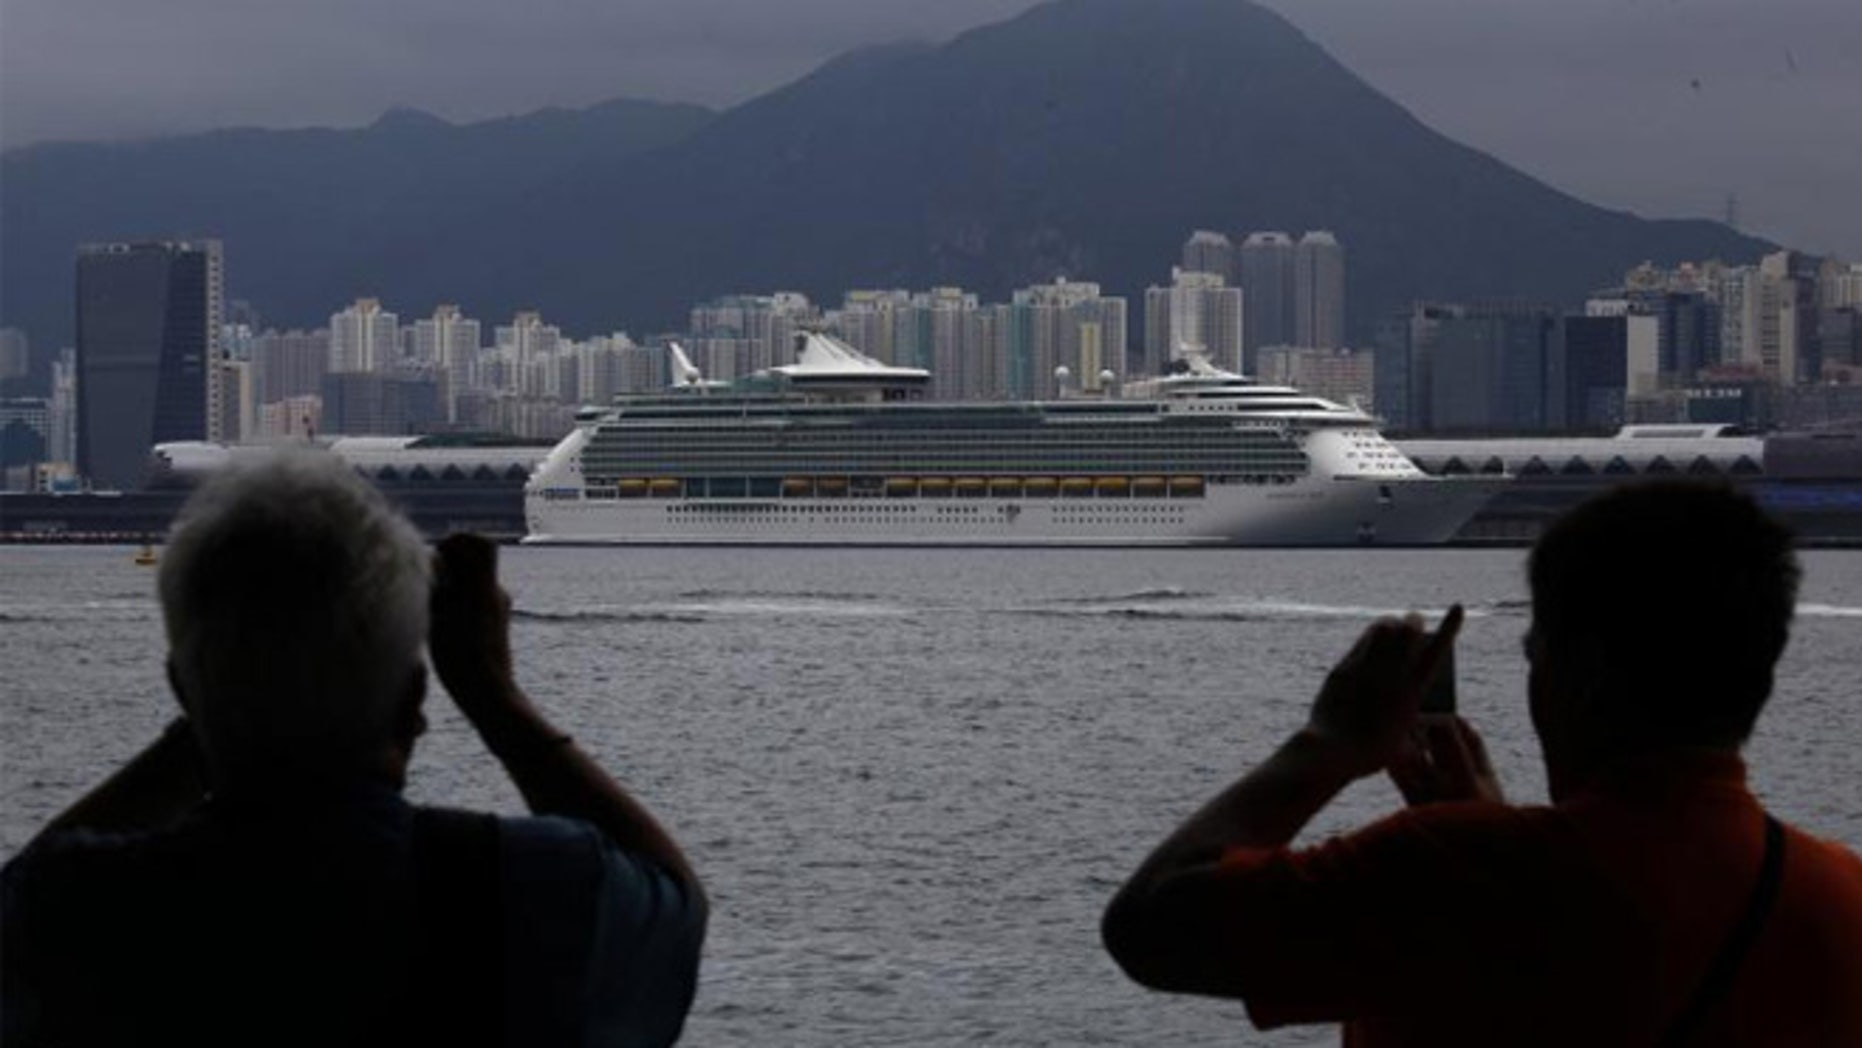 Cruise ship in Hong Kong. Some of the appeal to taking a cruise in Asia is that these trips tend to be longer,